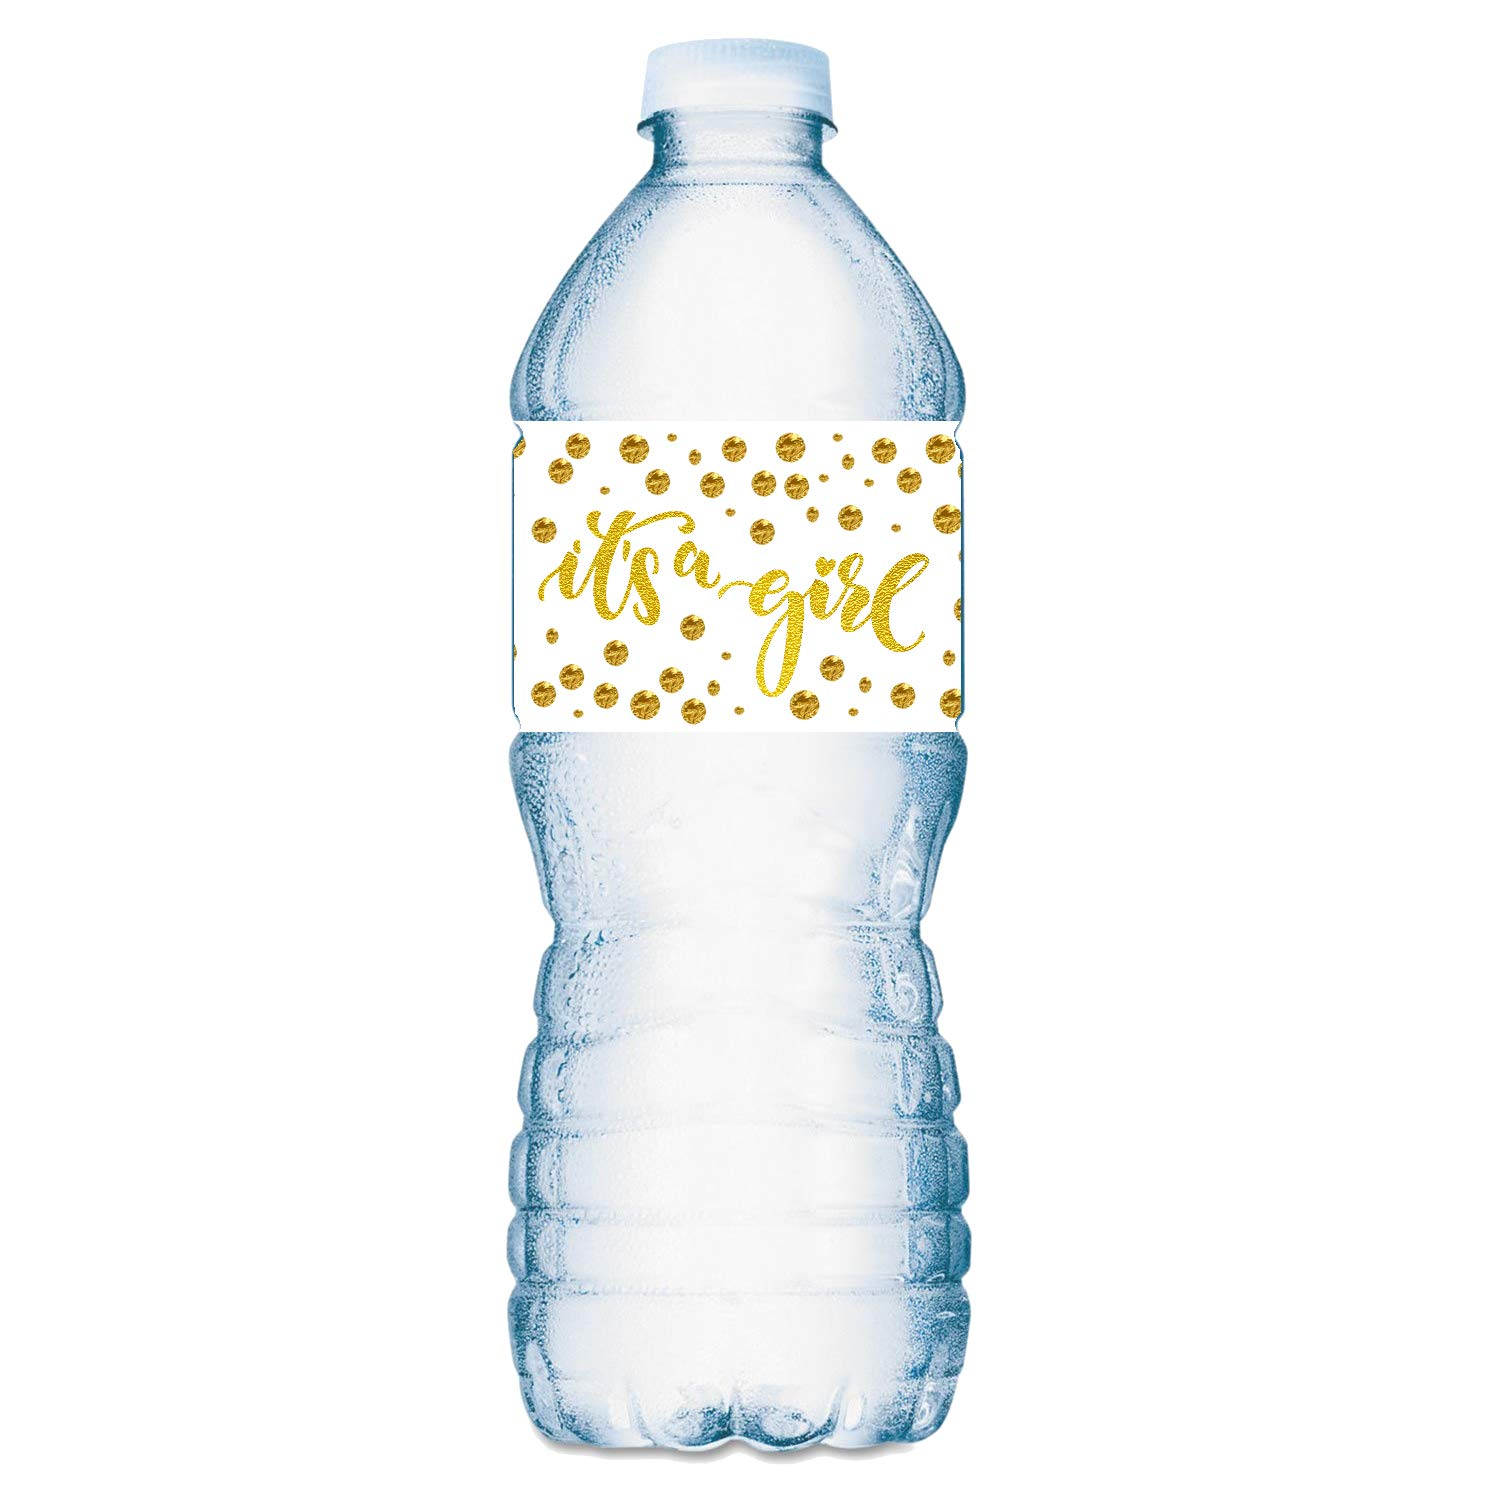 20 Gold It's a Girl Oh Baby Water Bottle Labels; Baby Shower Set of 20 Waterproof Water Bottle Wrappers; Gold and White.